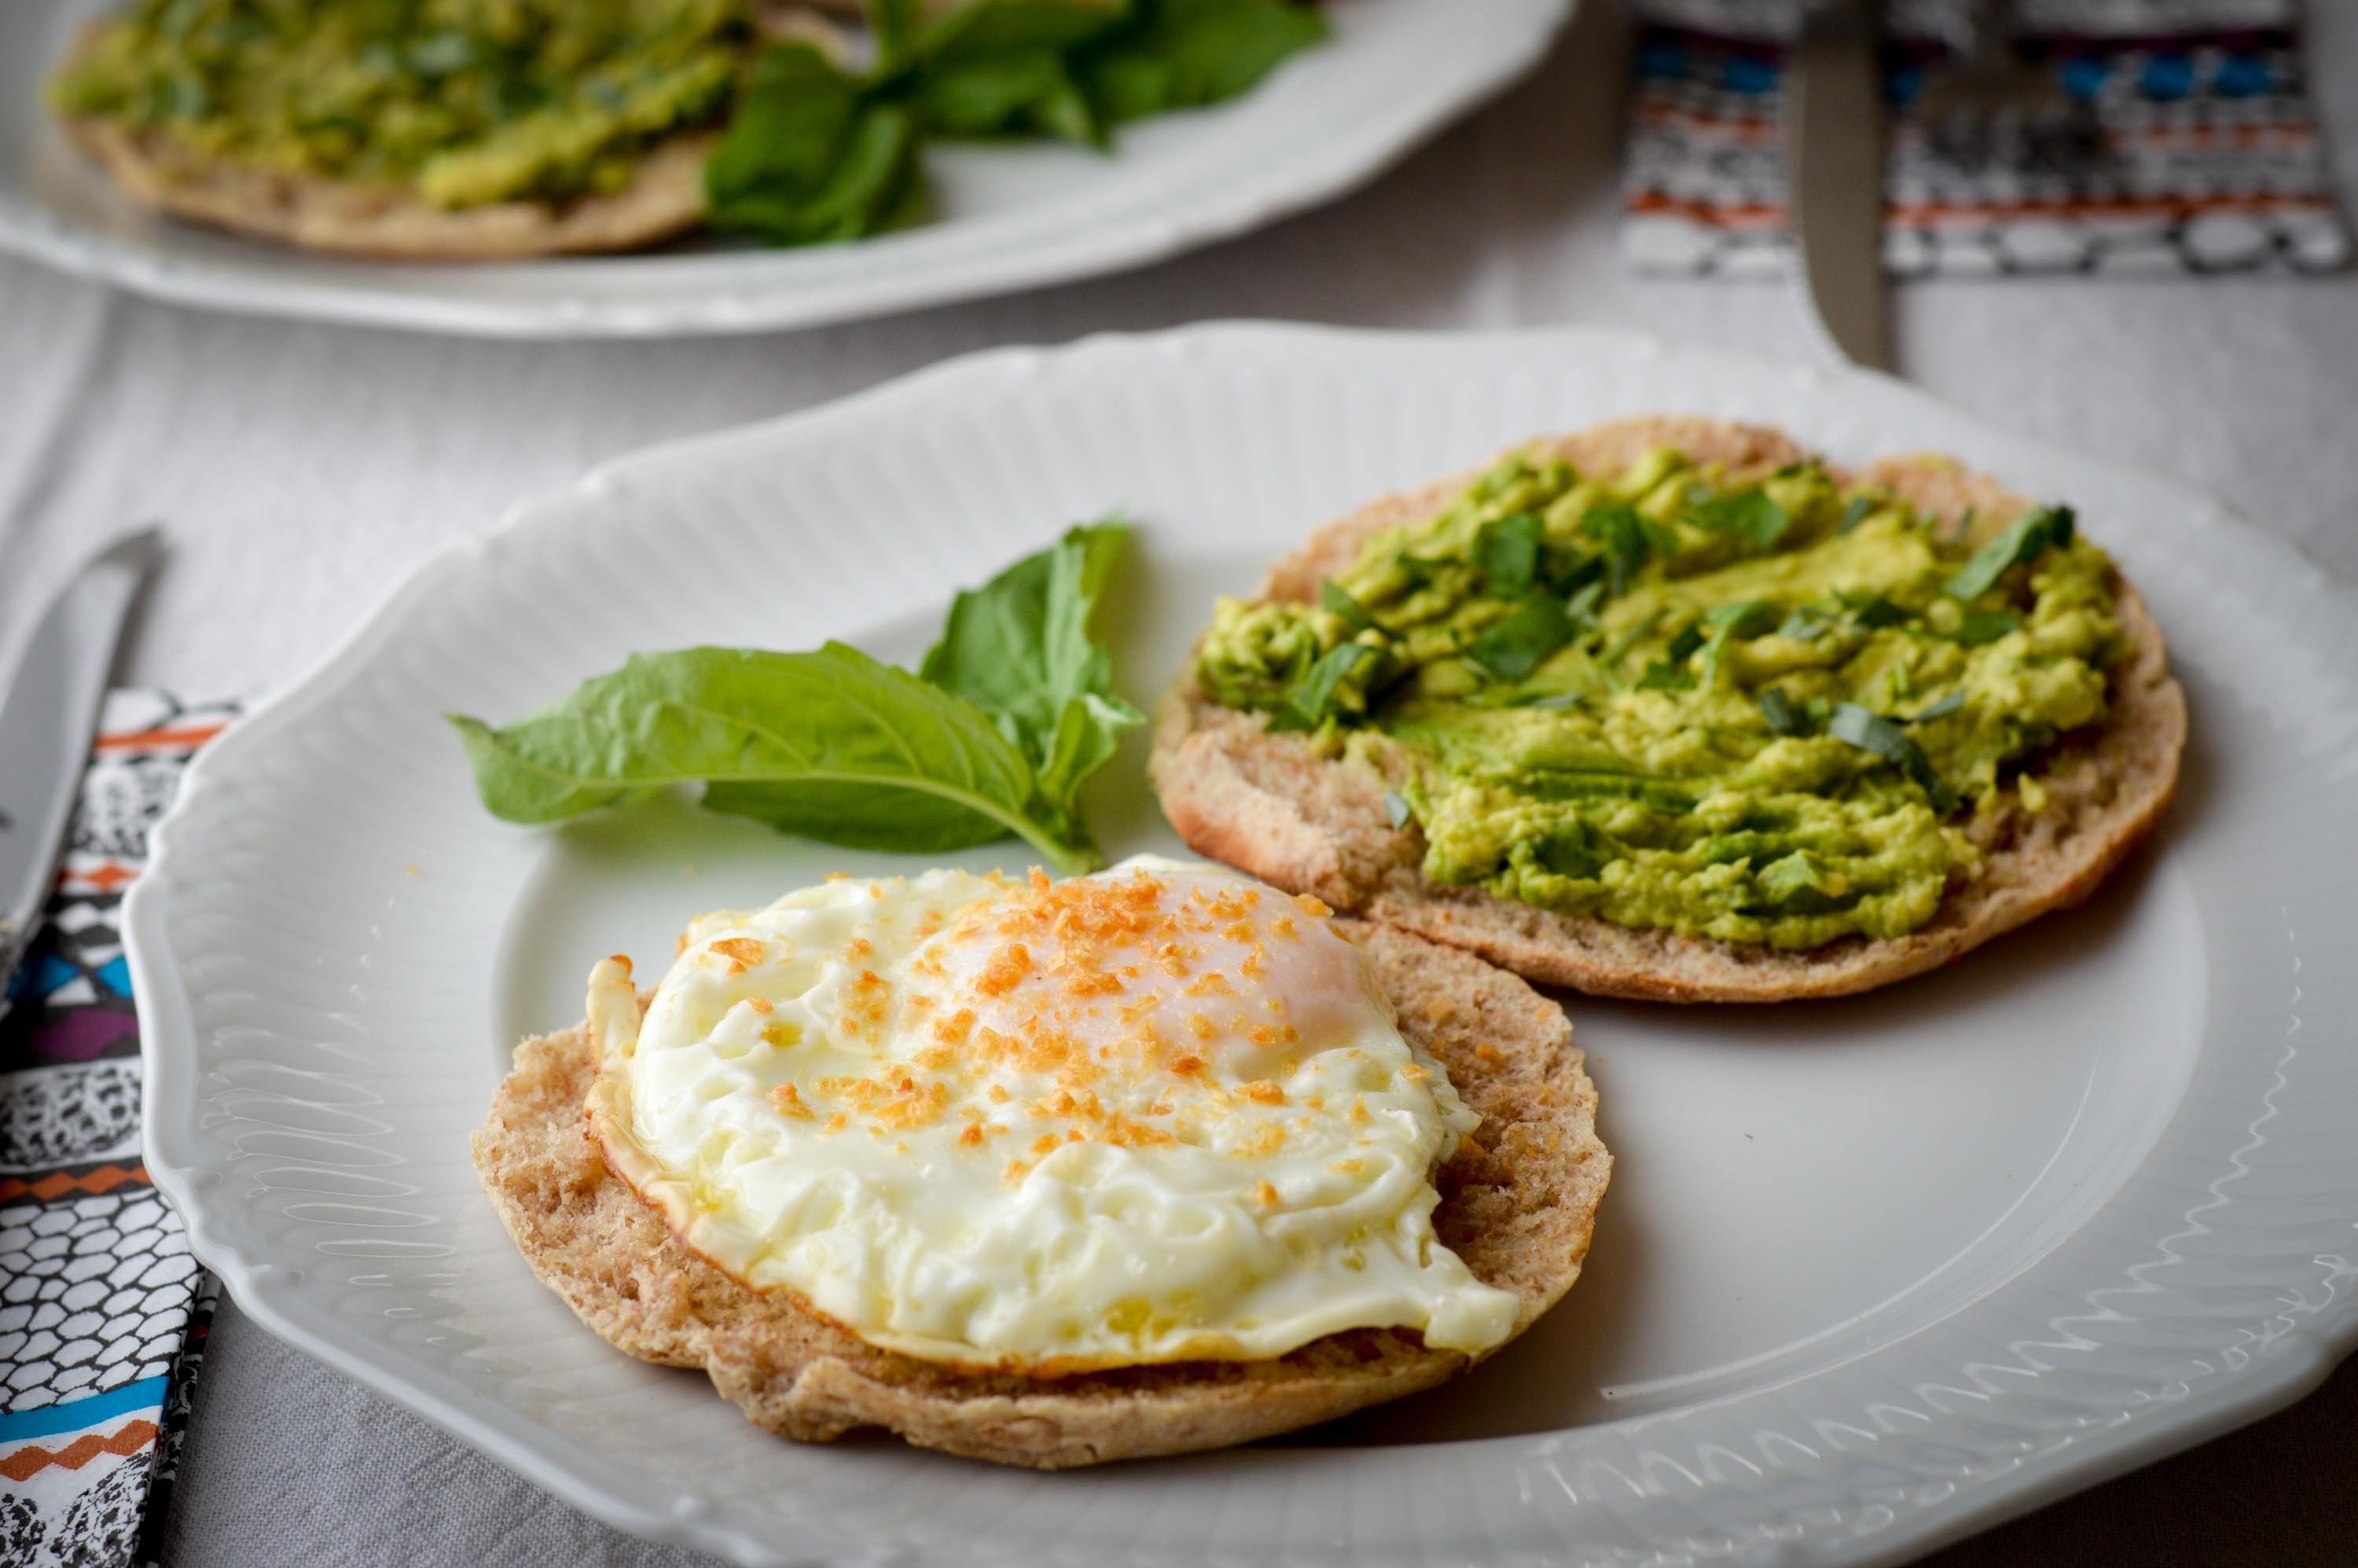 Garlic Gold® Breakfast Sandwiches with Fried Egg and Avocado